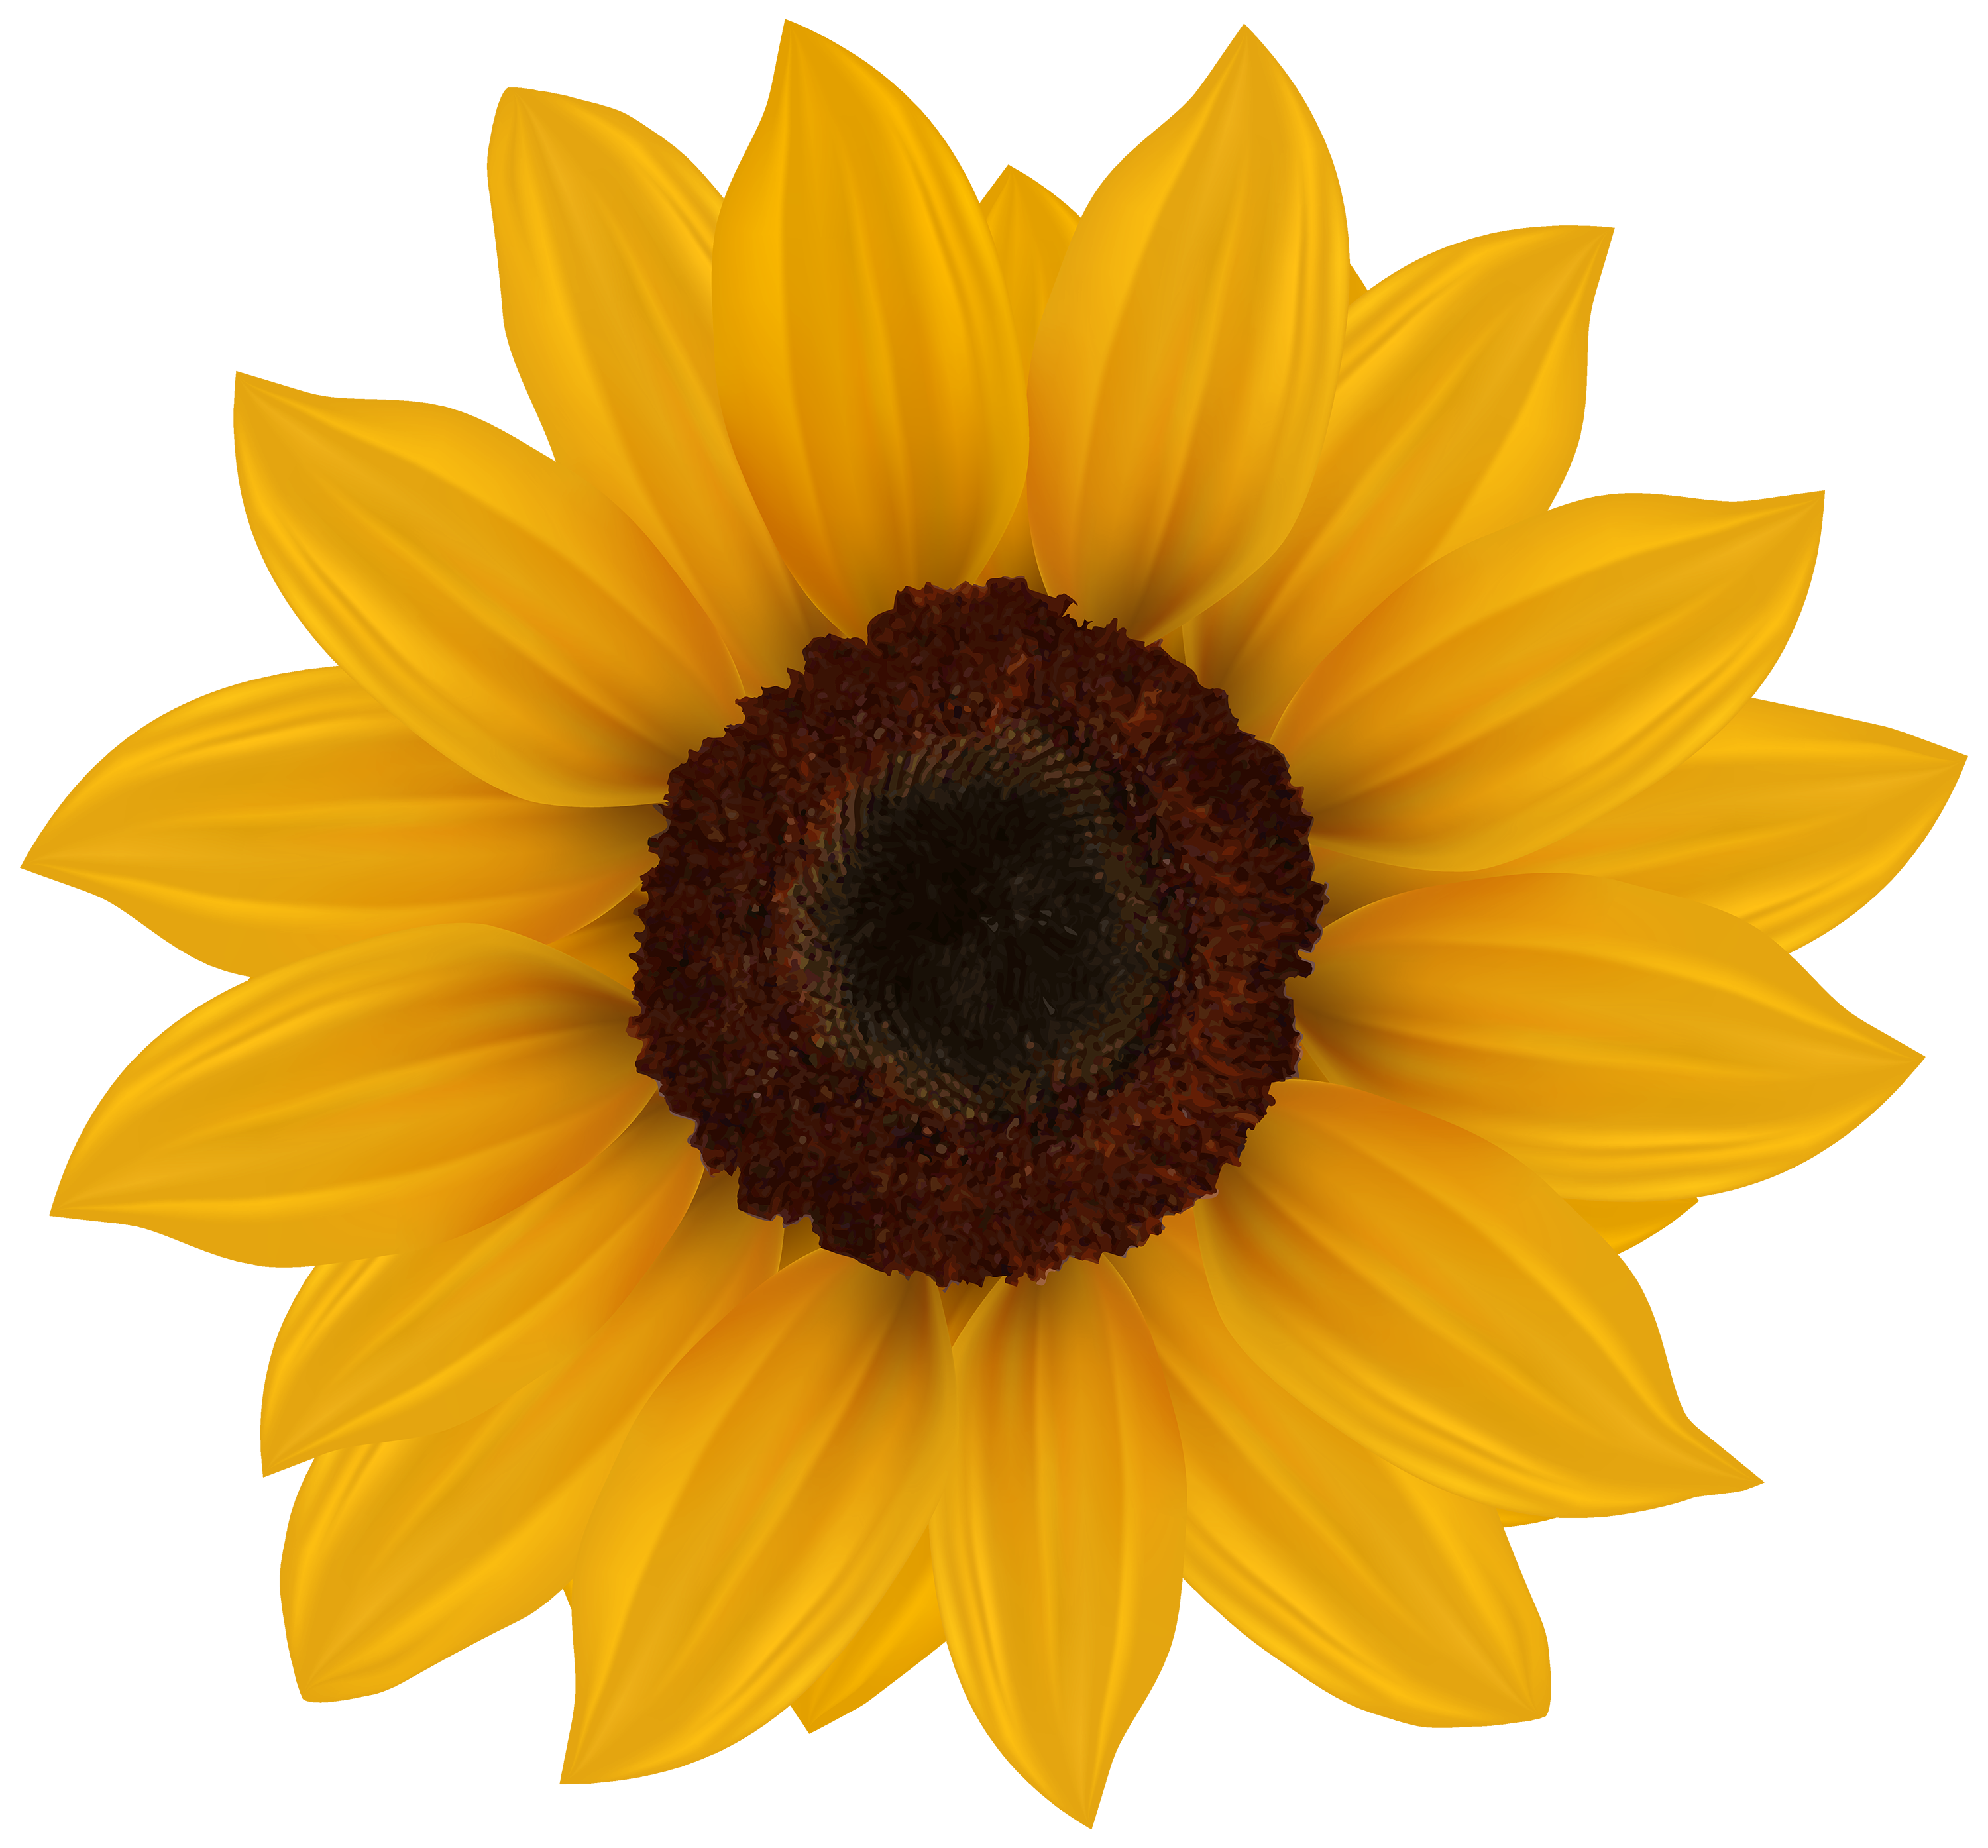 Sunflower clipart #3, Download drawings